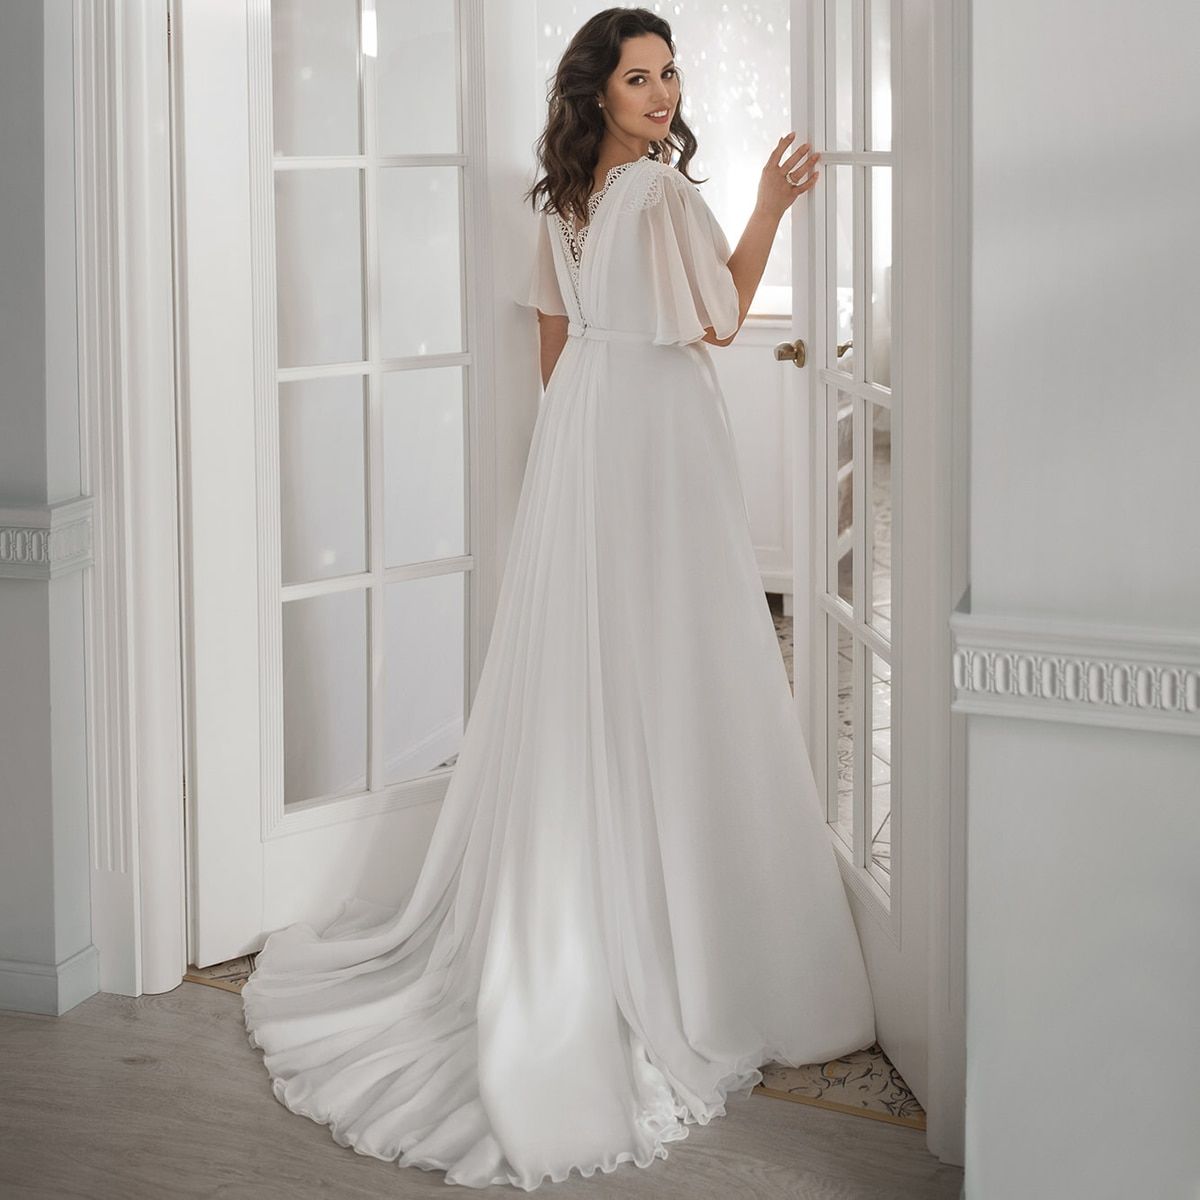 High Split V Neck Chiffon Wedding Bride Dress Ruched Lace Beach Flare Sleeves Bridesmaid Bridal Gown With Sweep Train Plus Size